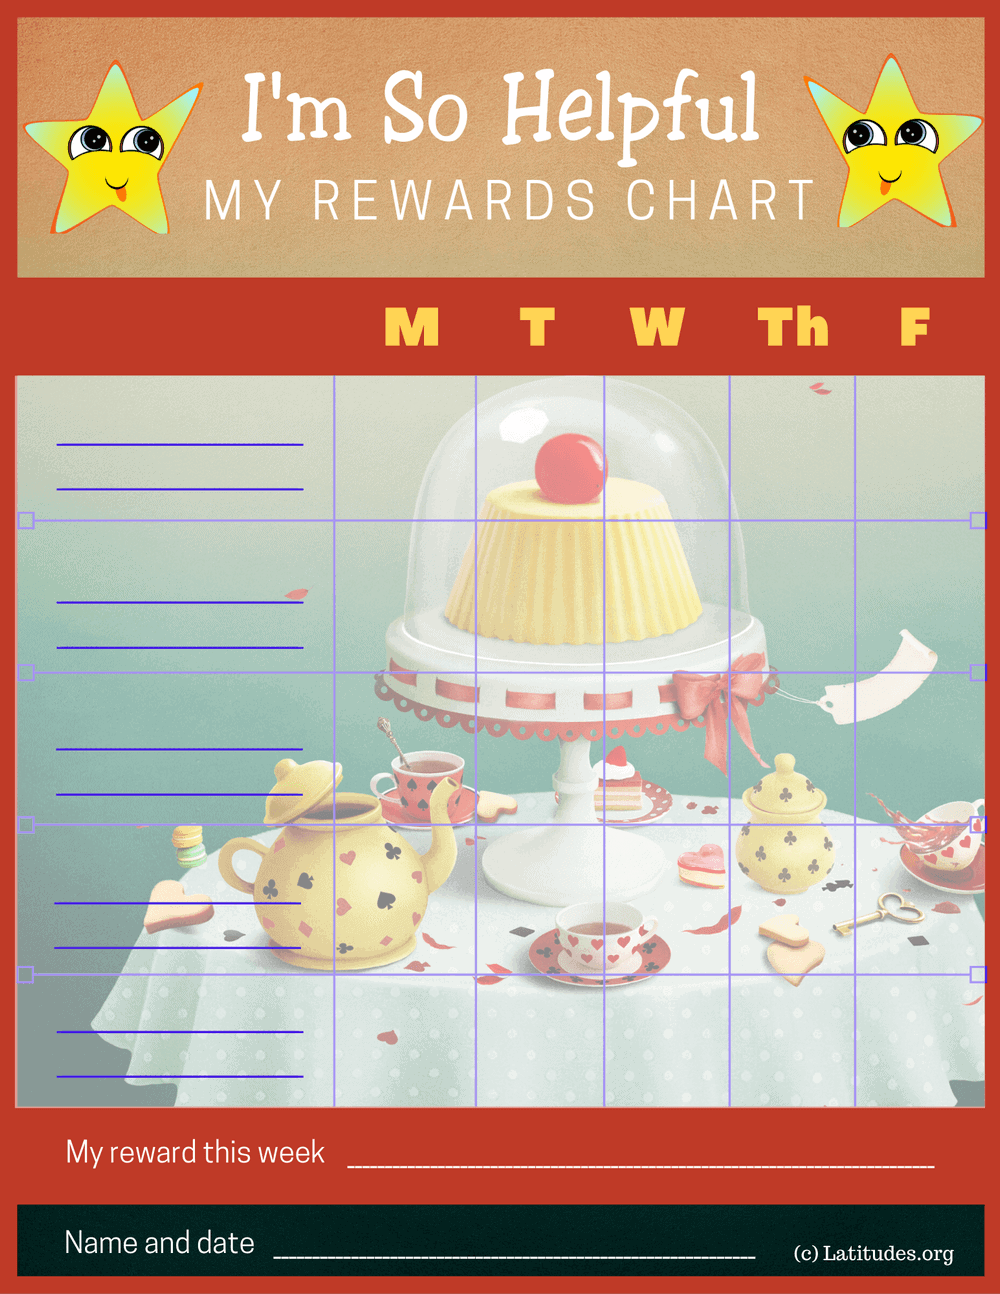 I'm So Helpful Rewards Chore Chart (Fillable)